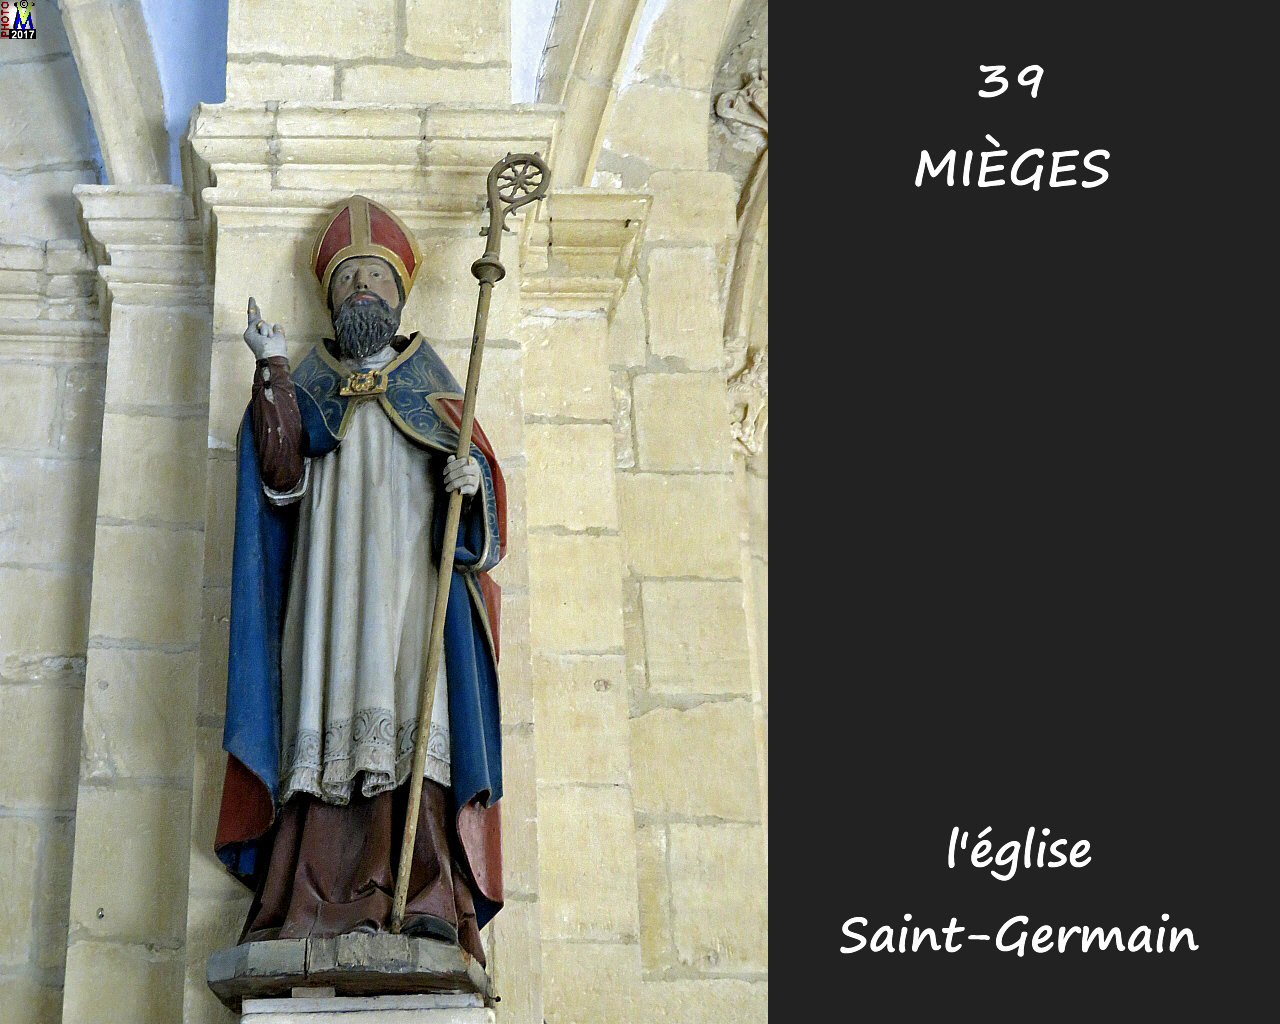 39MIEGES_eglise_266.jpg